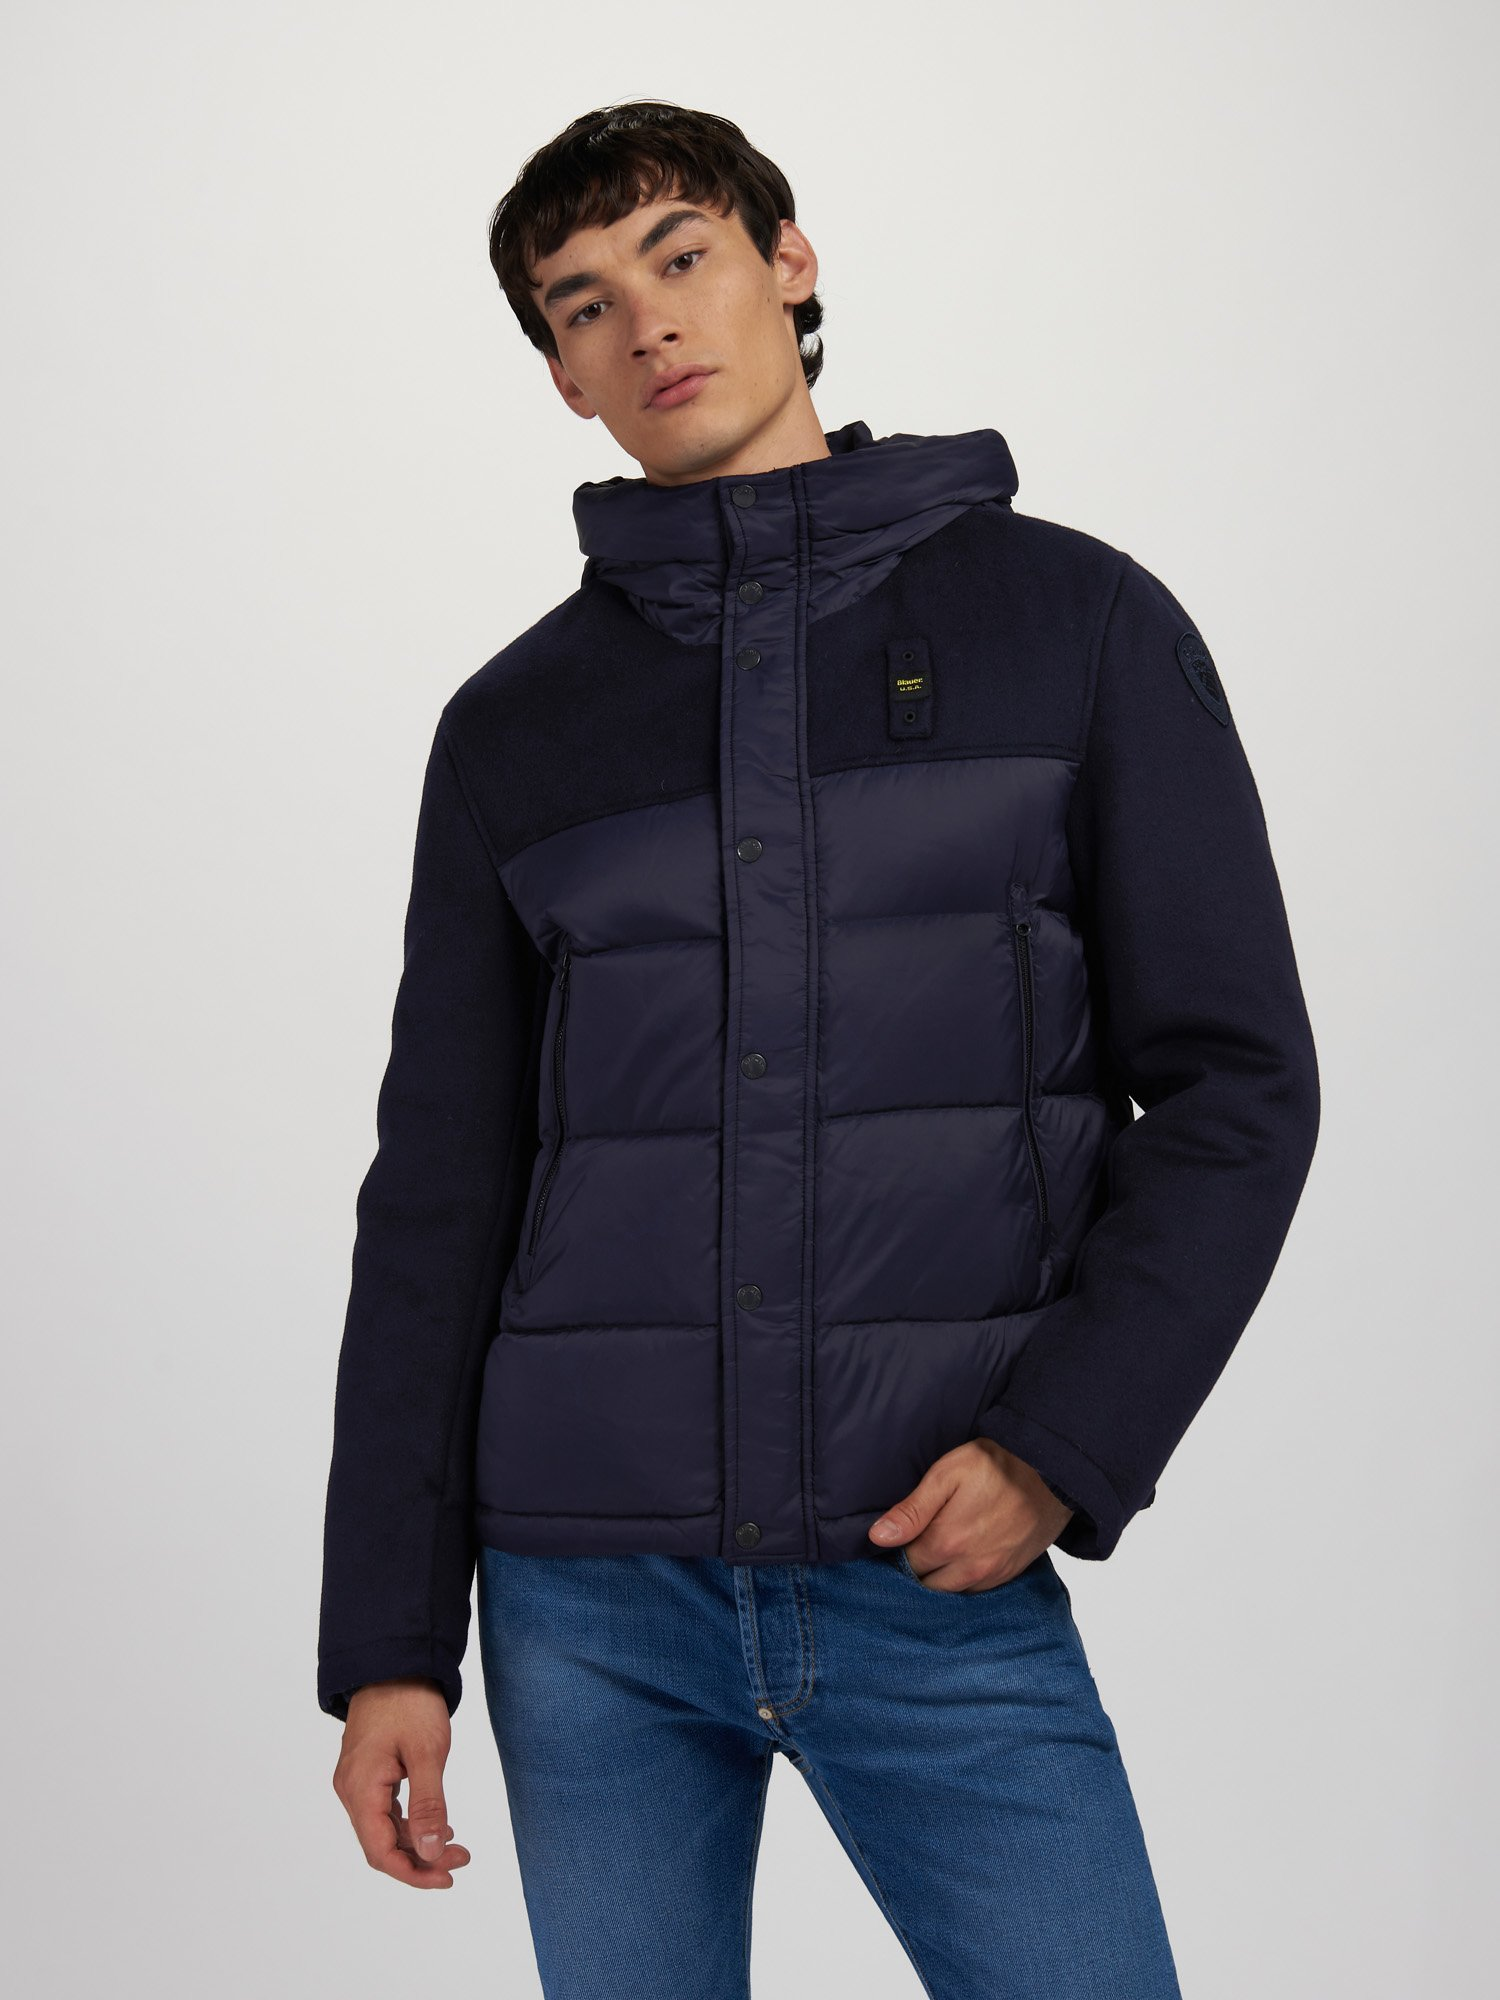 CARLOS WOOL AND NYLON DOWN JACKET - Blauer